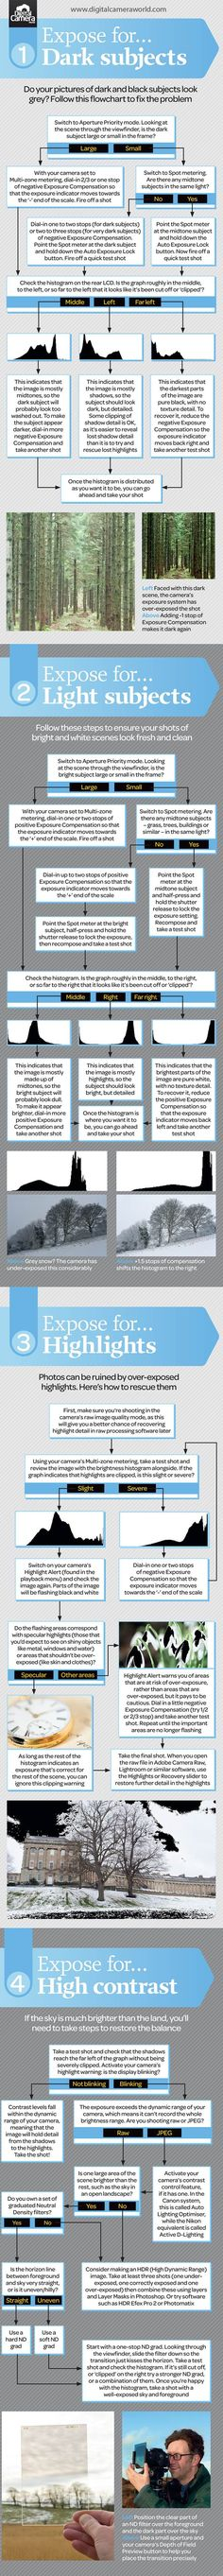 Cheat Sheet: How to Get Metering and Exposure Right - Digital Photography School